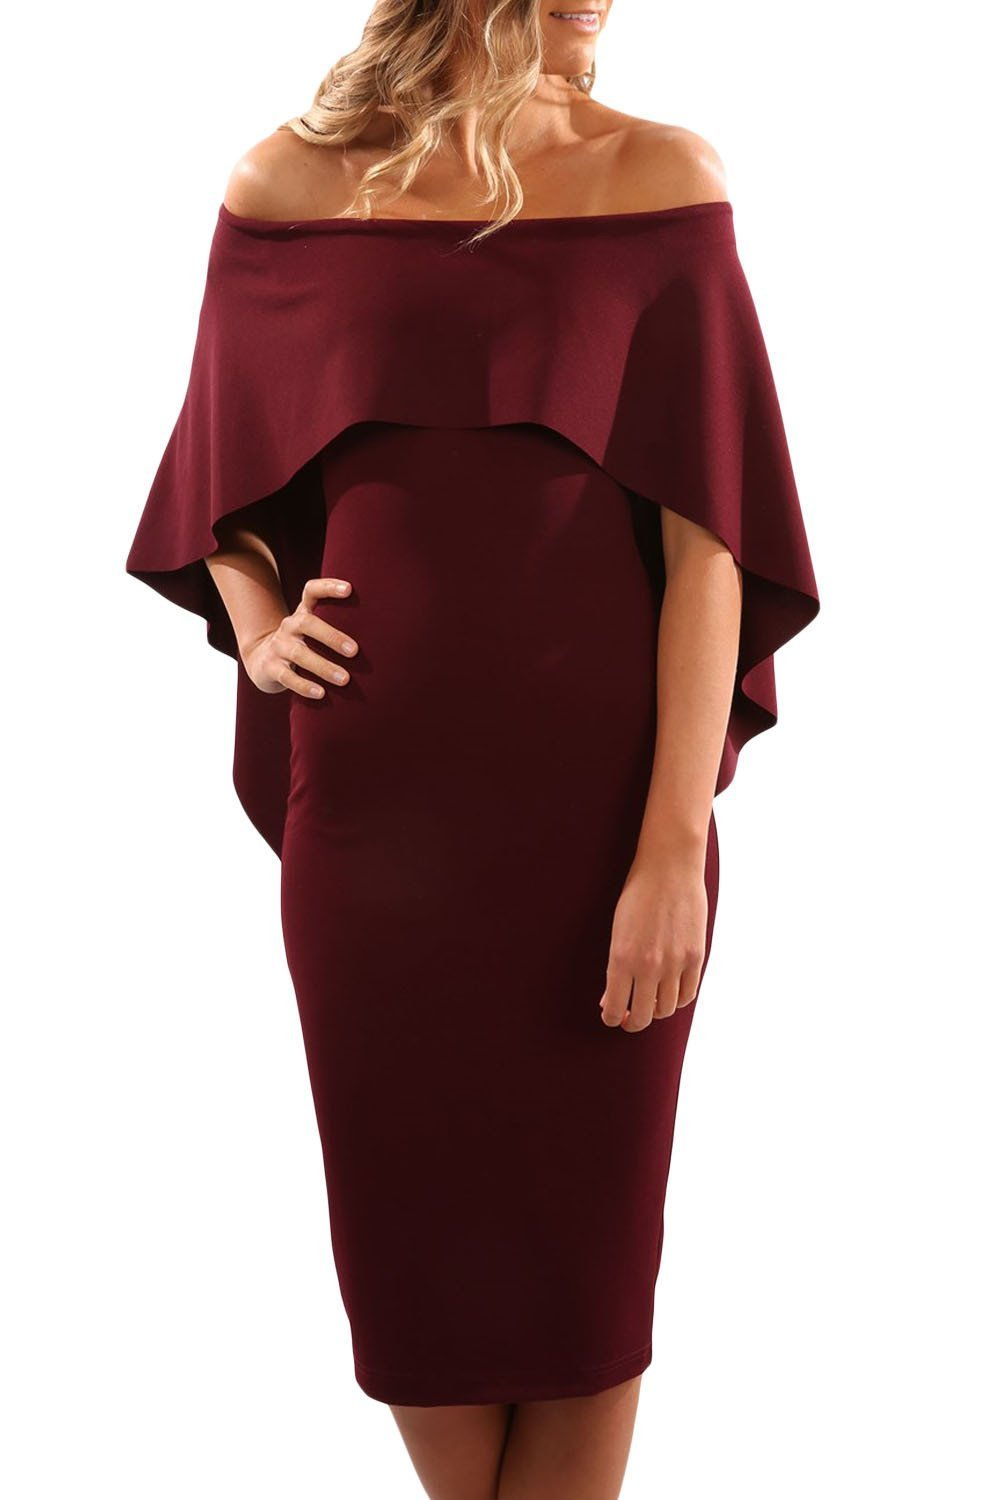 Fashion Onlinechoic Burgundy Luxurious Off Shoulder Batwing Cape Midi Dress